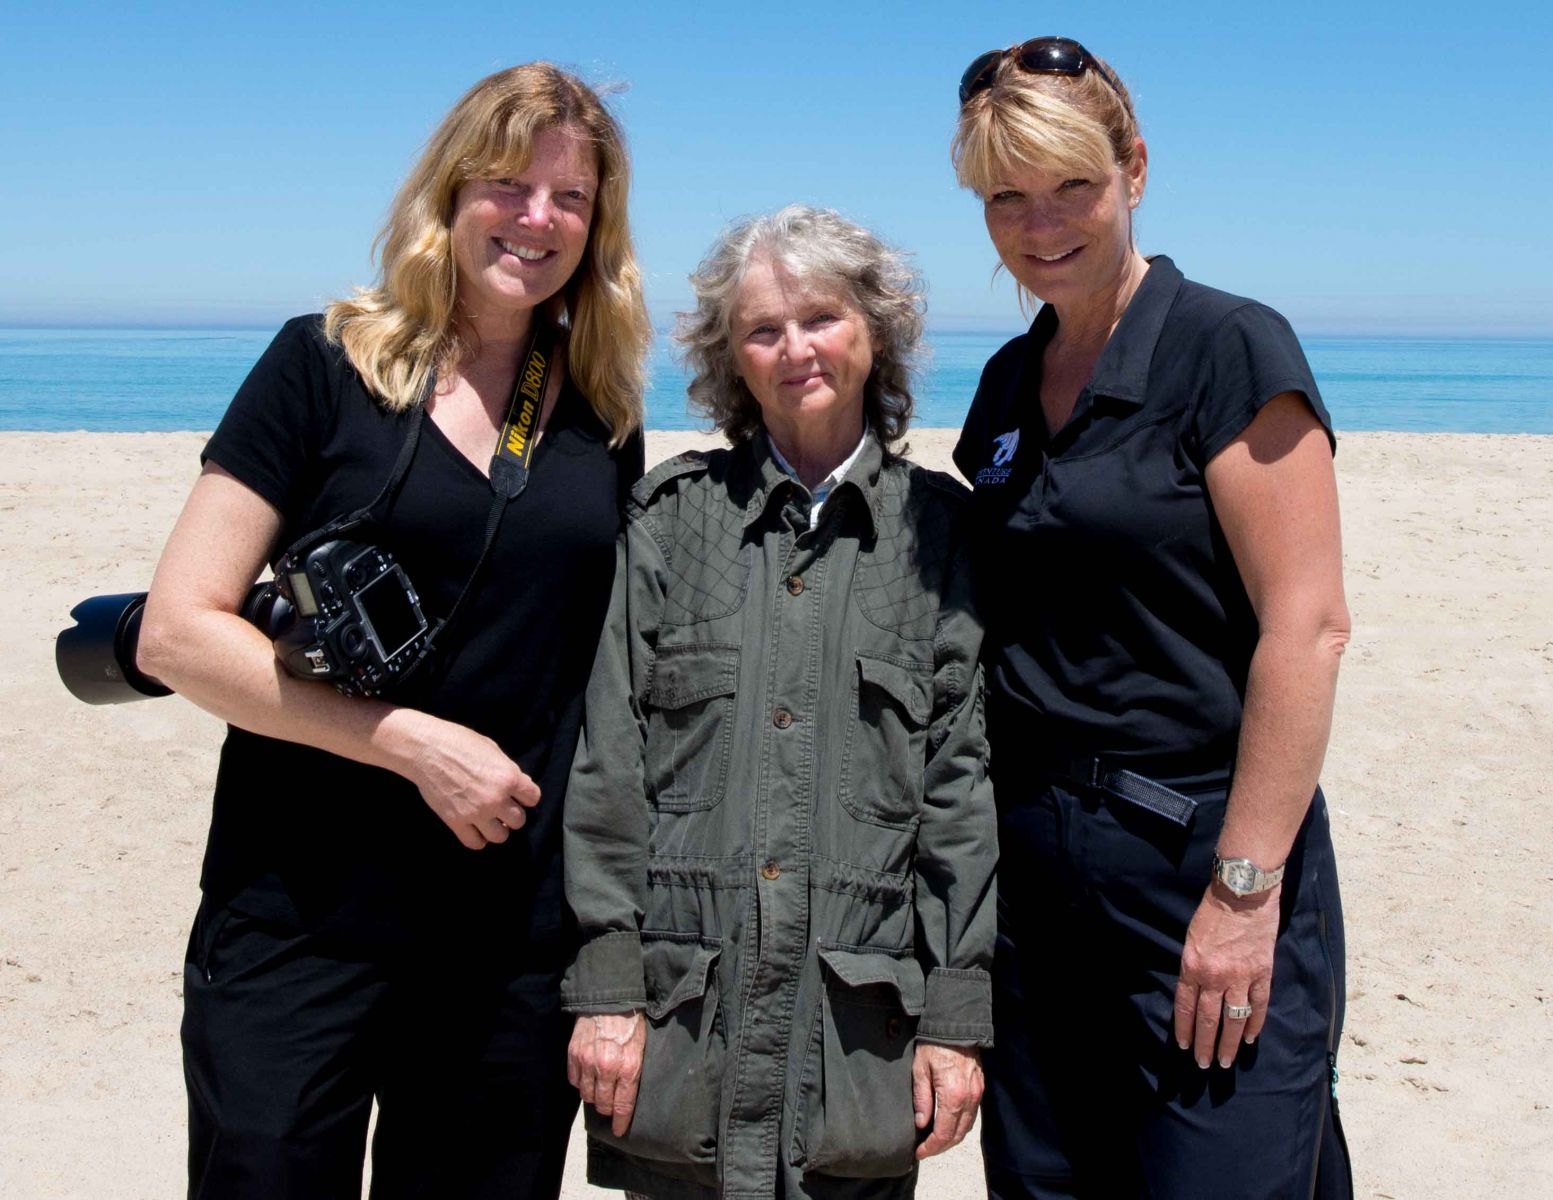 Me, Zoe Lucas and photographer Michelle Valberg